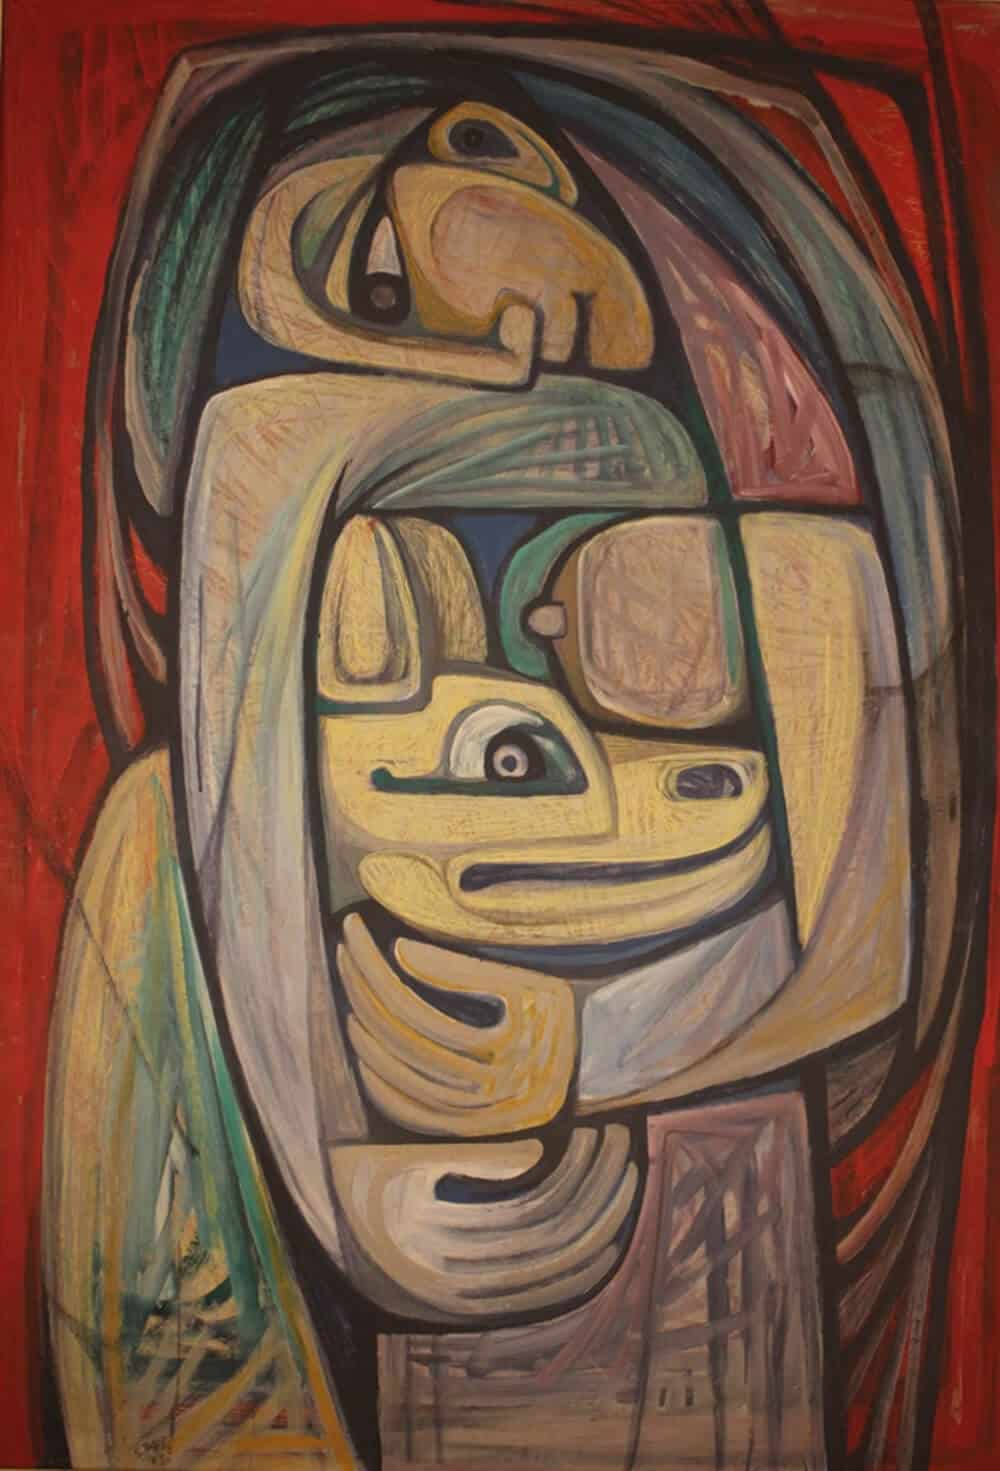 Samir Rafi, Untitled, 1973. Oil on Board. Courtesy of UBUNTU Art Gallery.